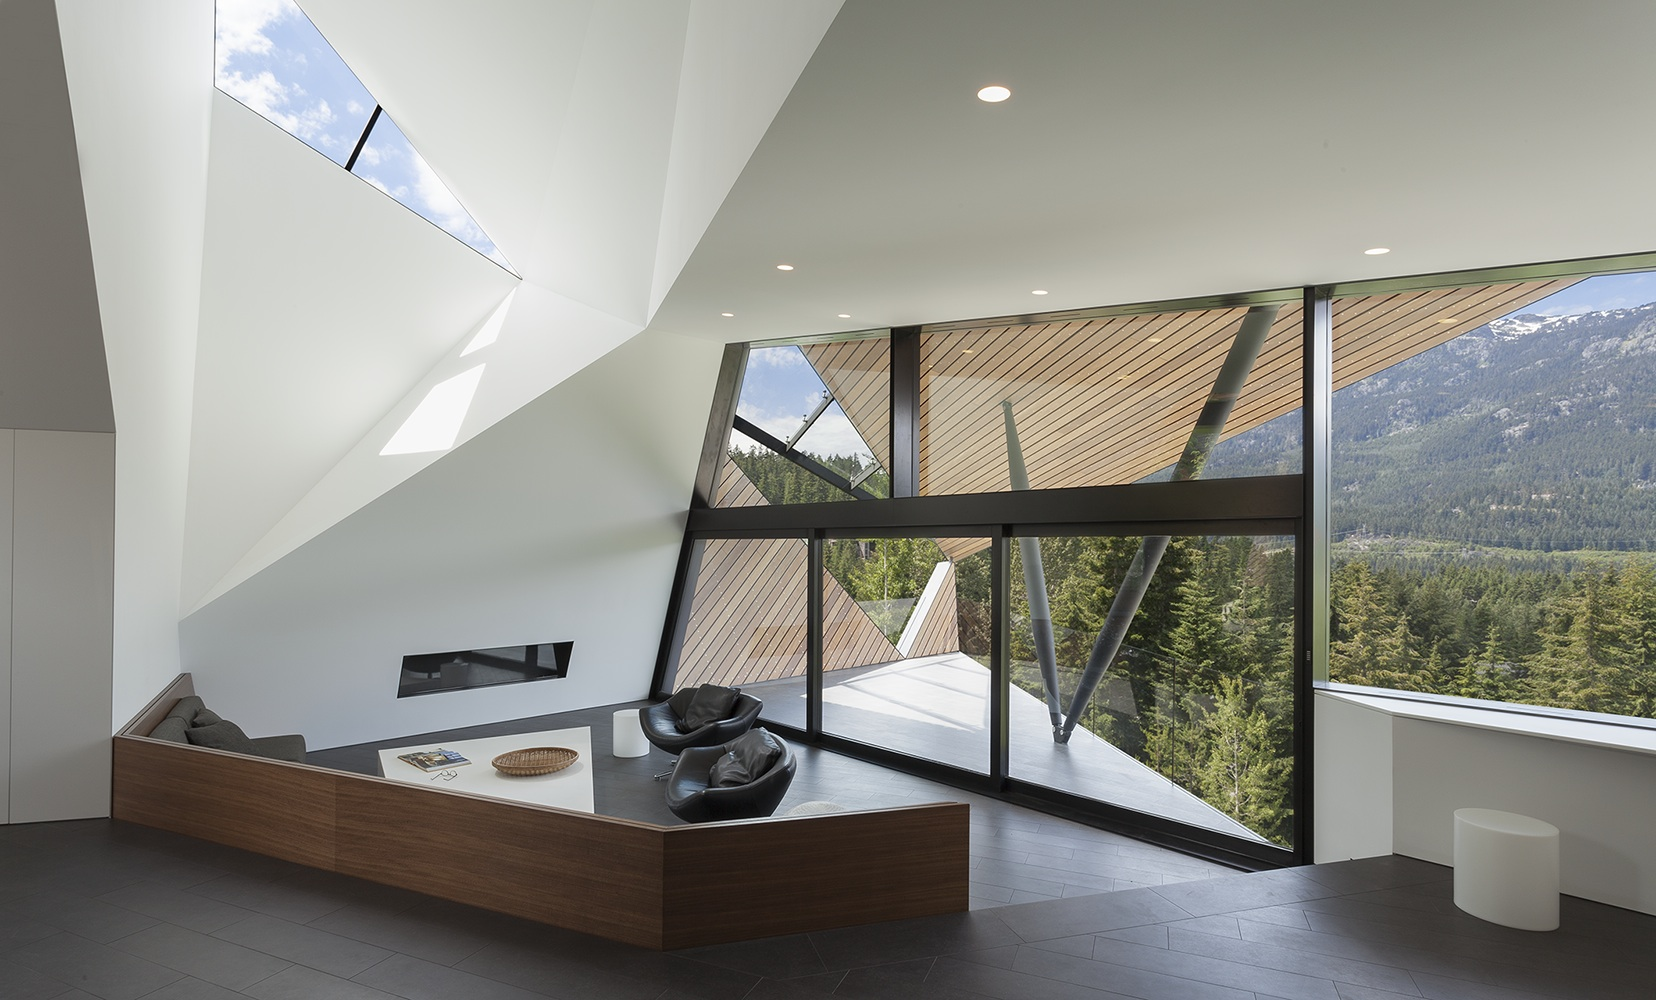 Back inside the home, we can see the small enclosed fireplace in the living room, the cozy leather chairs, and the angular skylights filtering sunshine down into the spacious area.